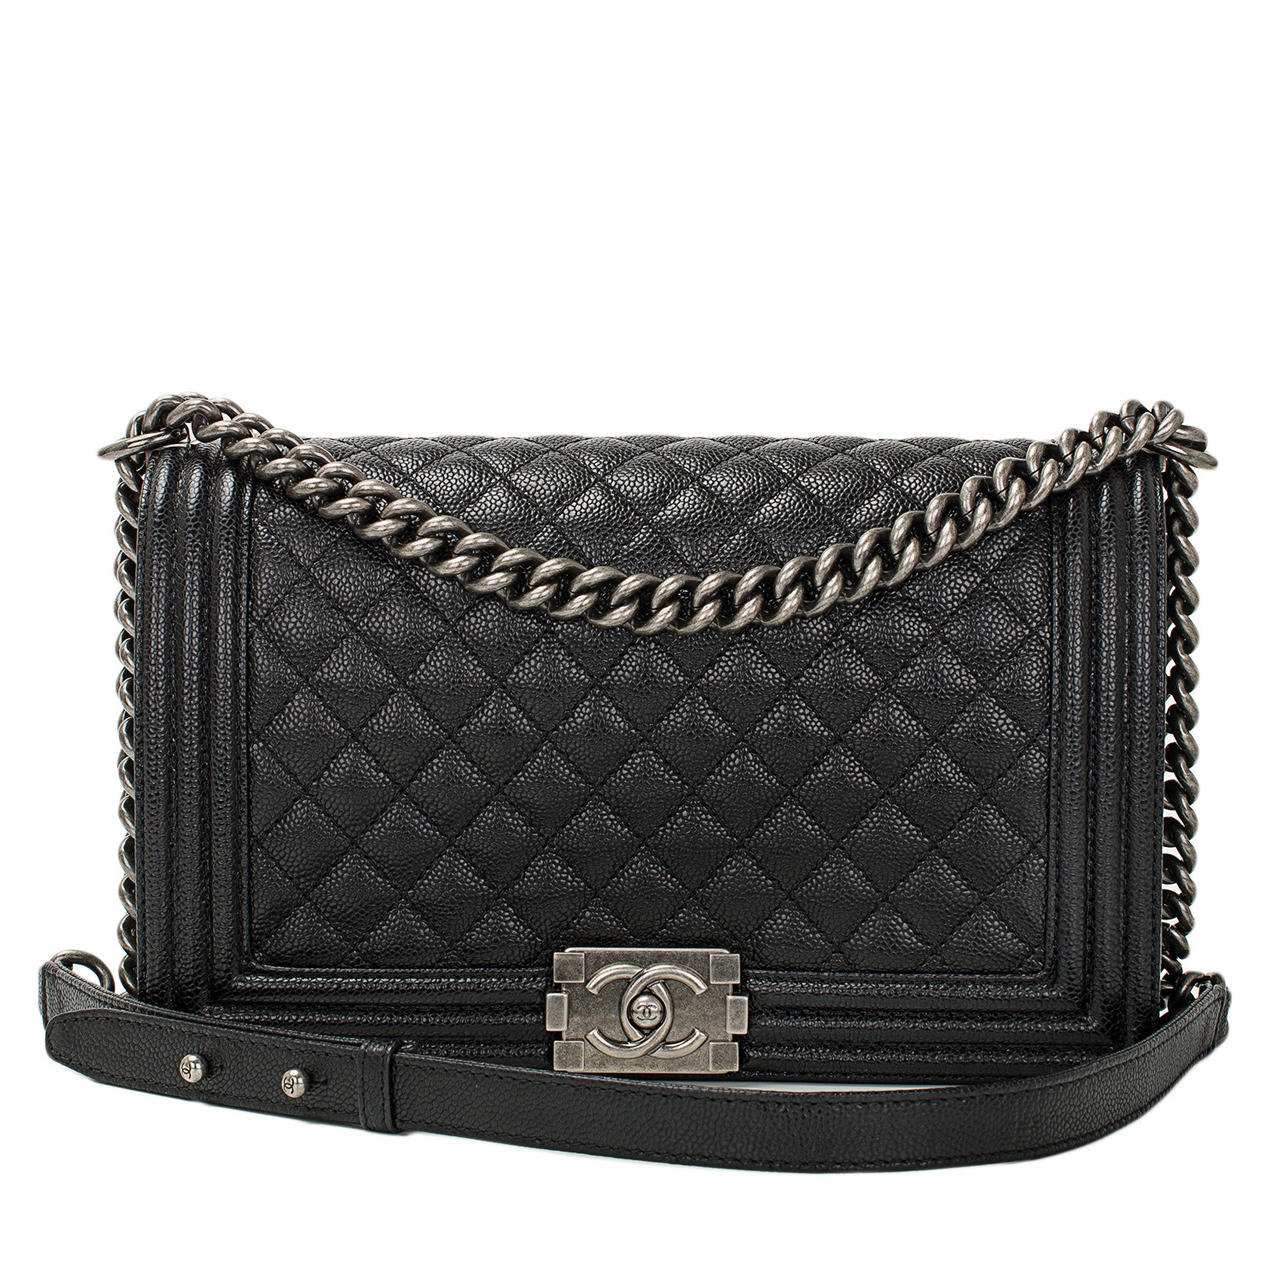 Chanel Black Caviar New Medium Boy Bag